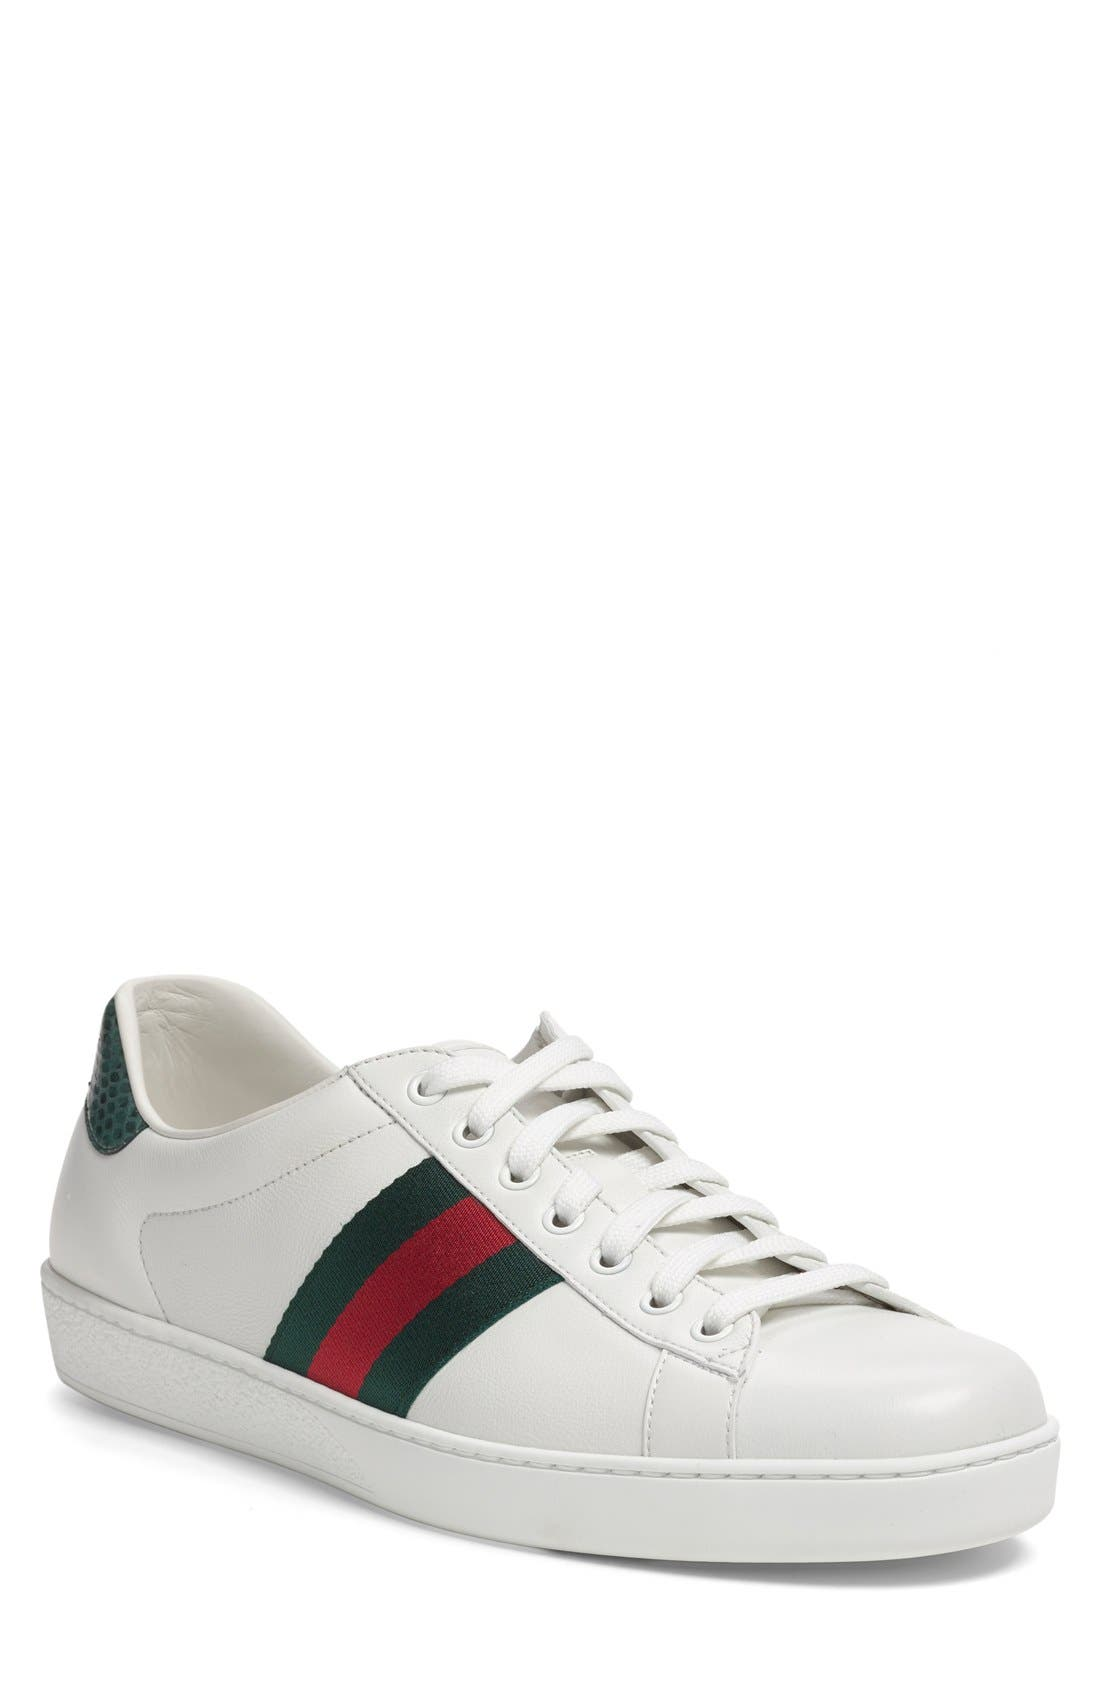 Gucci New Ace Sneaker (Men). WHITE LEATHER; BEIGE